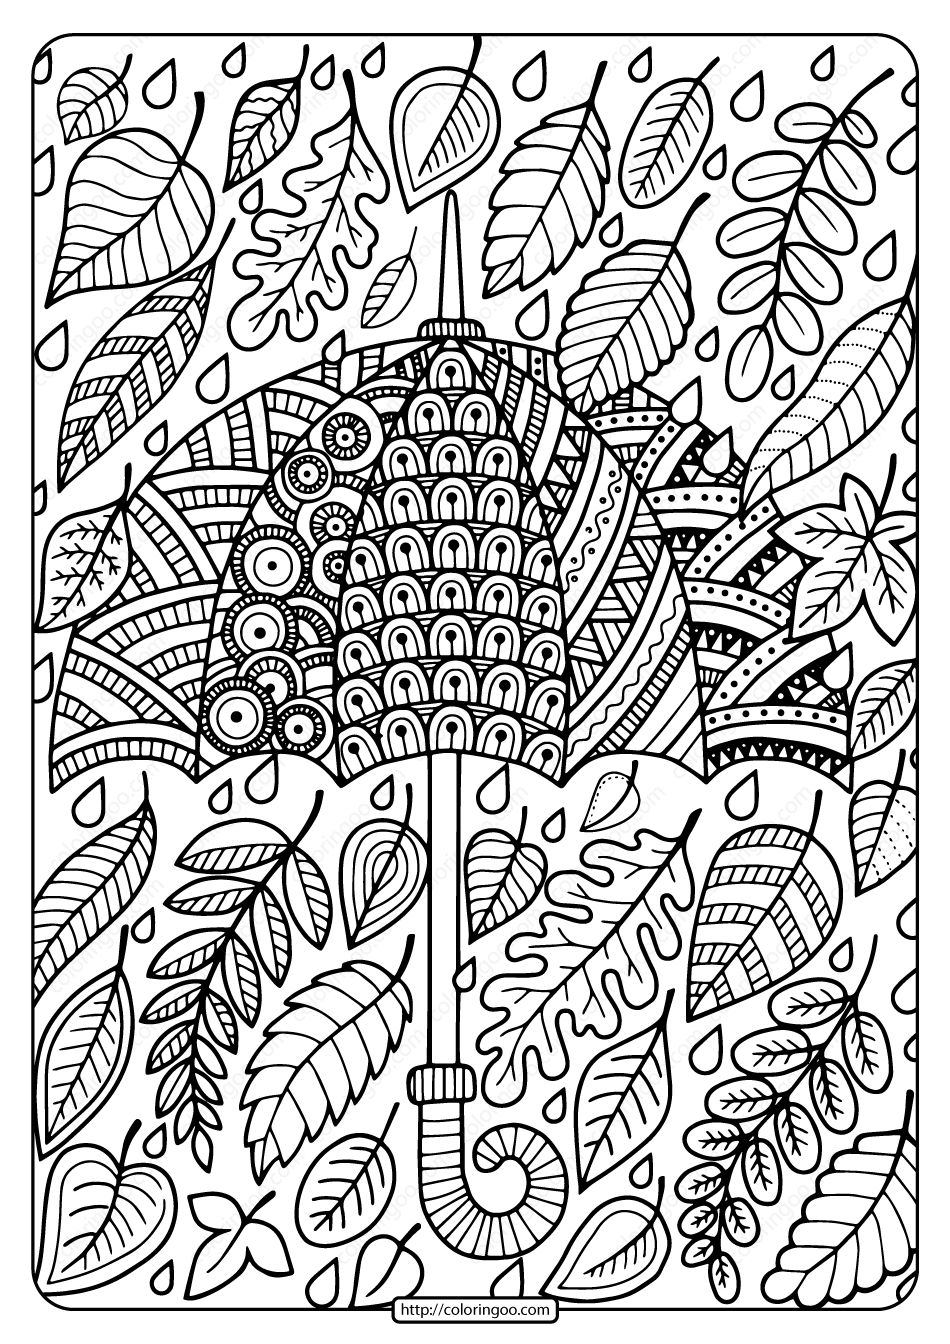 Printable Umbrella and Leaves Coloring Page